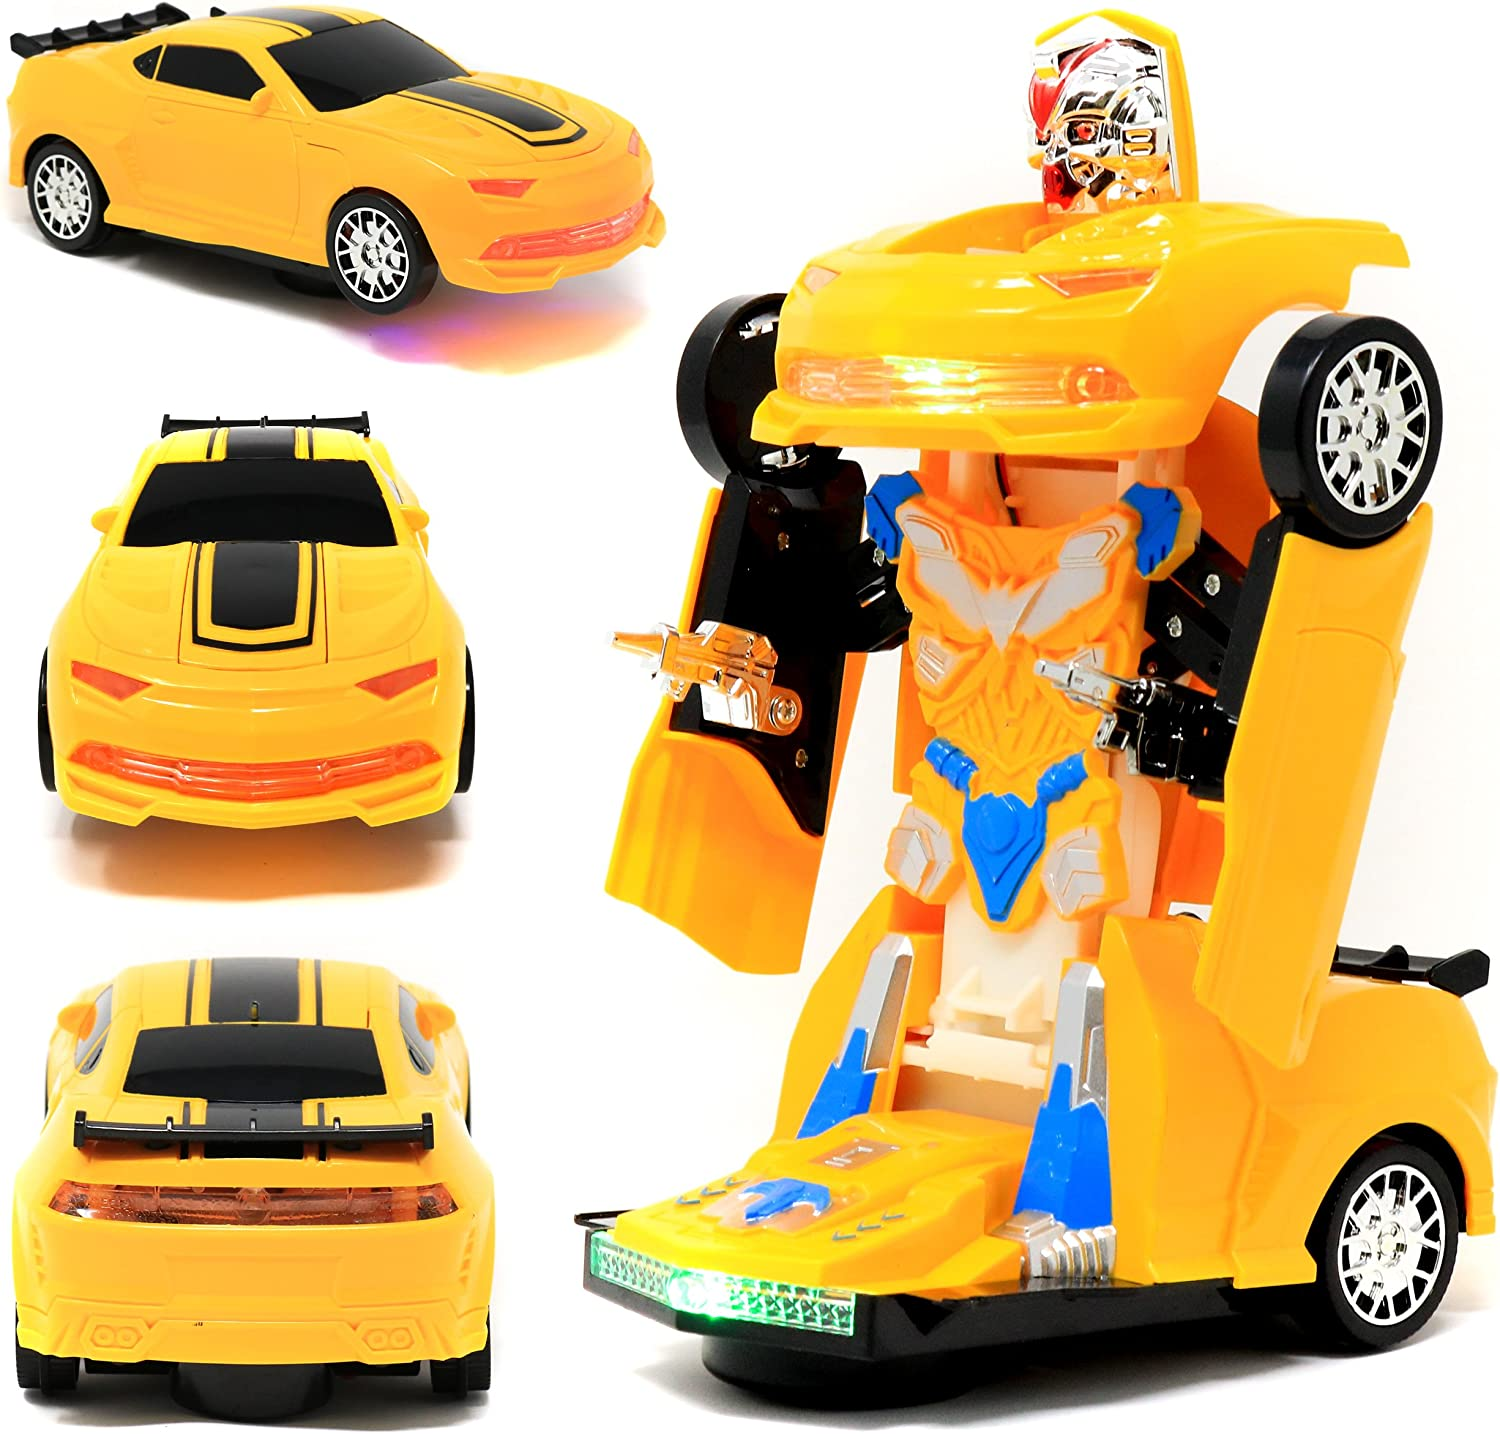 Yellow Retailery 2-in-1 Robot Transformer Toy Car with Lights and Sounds